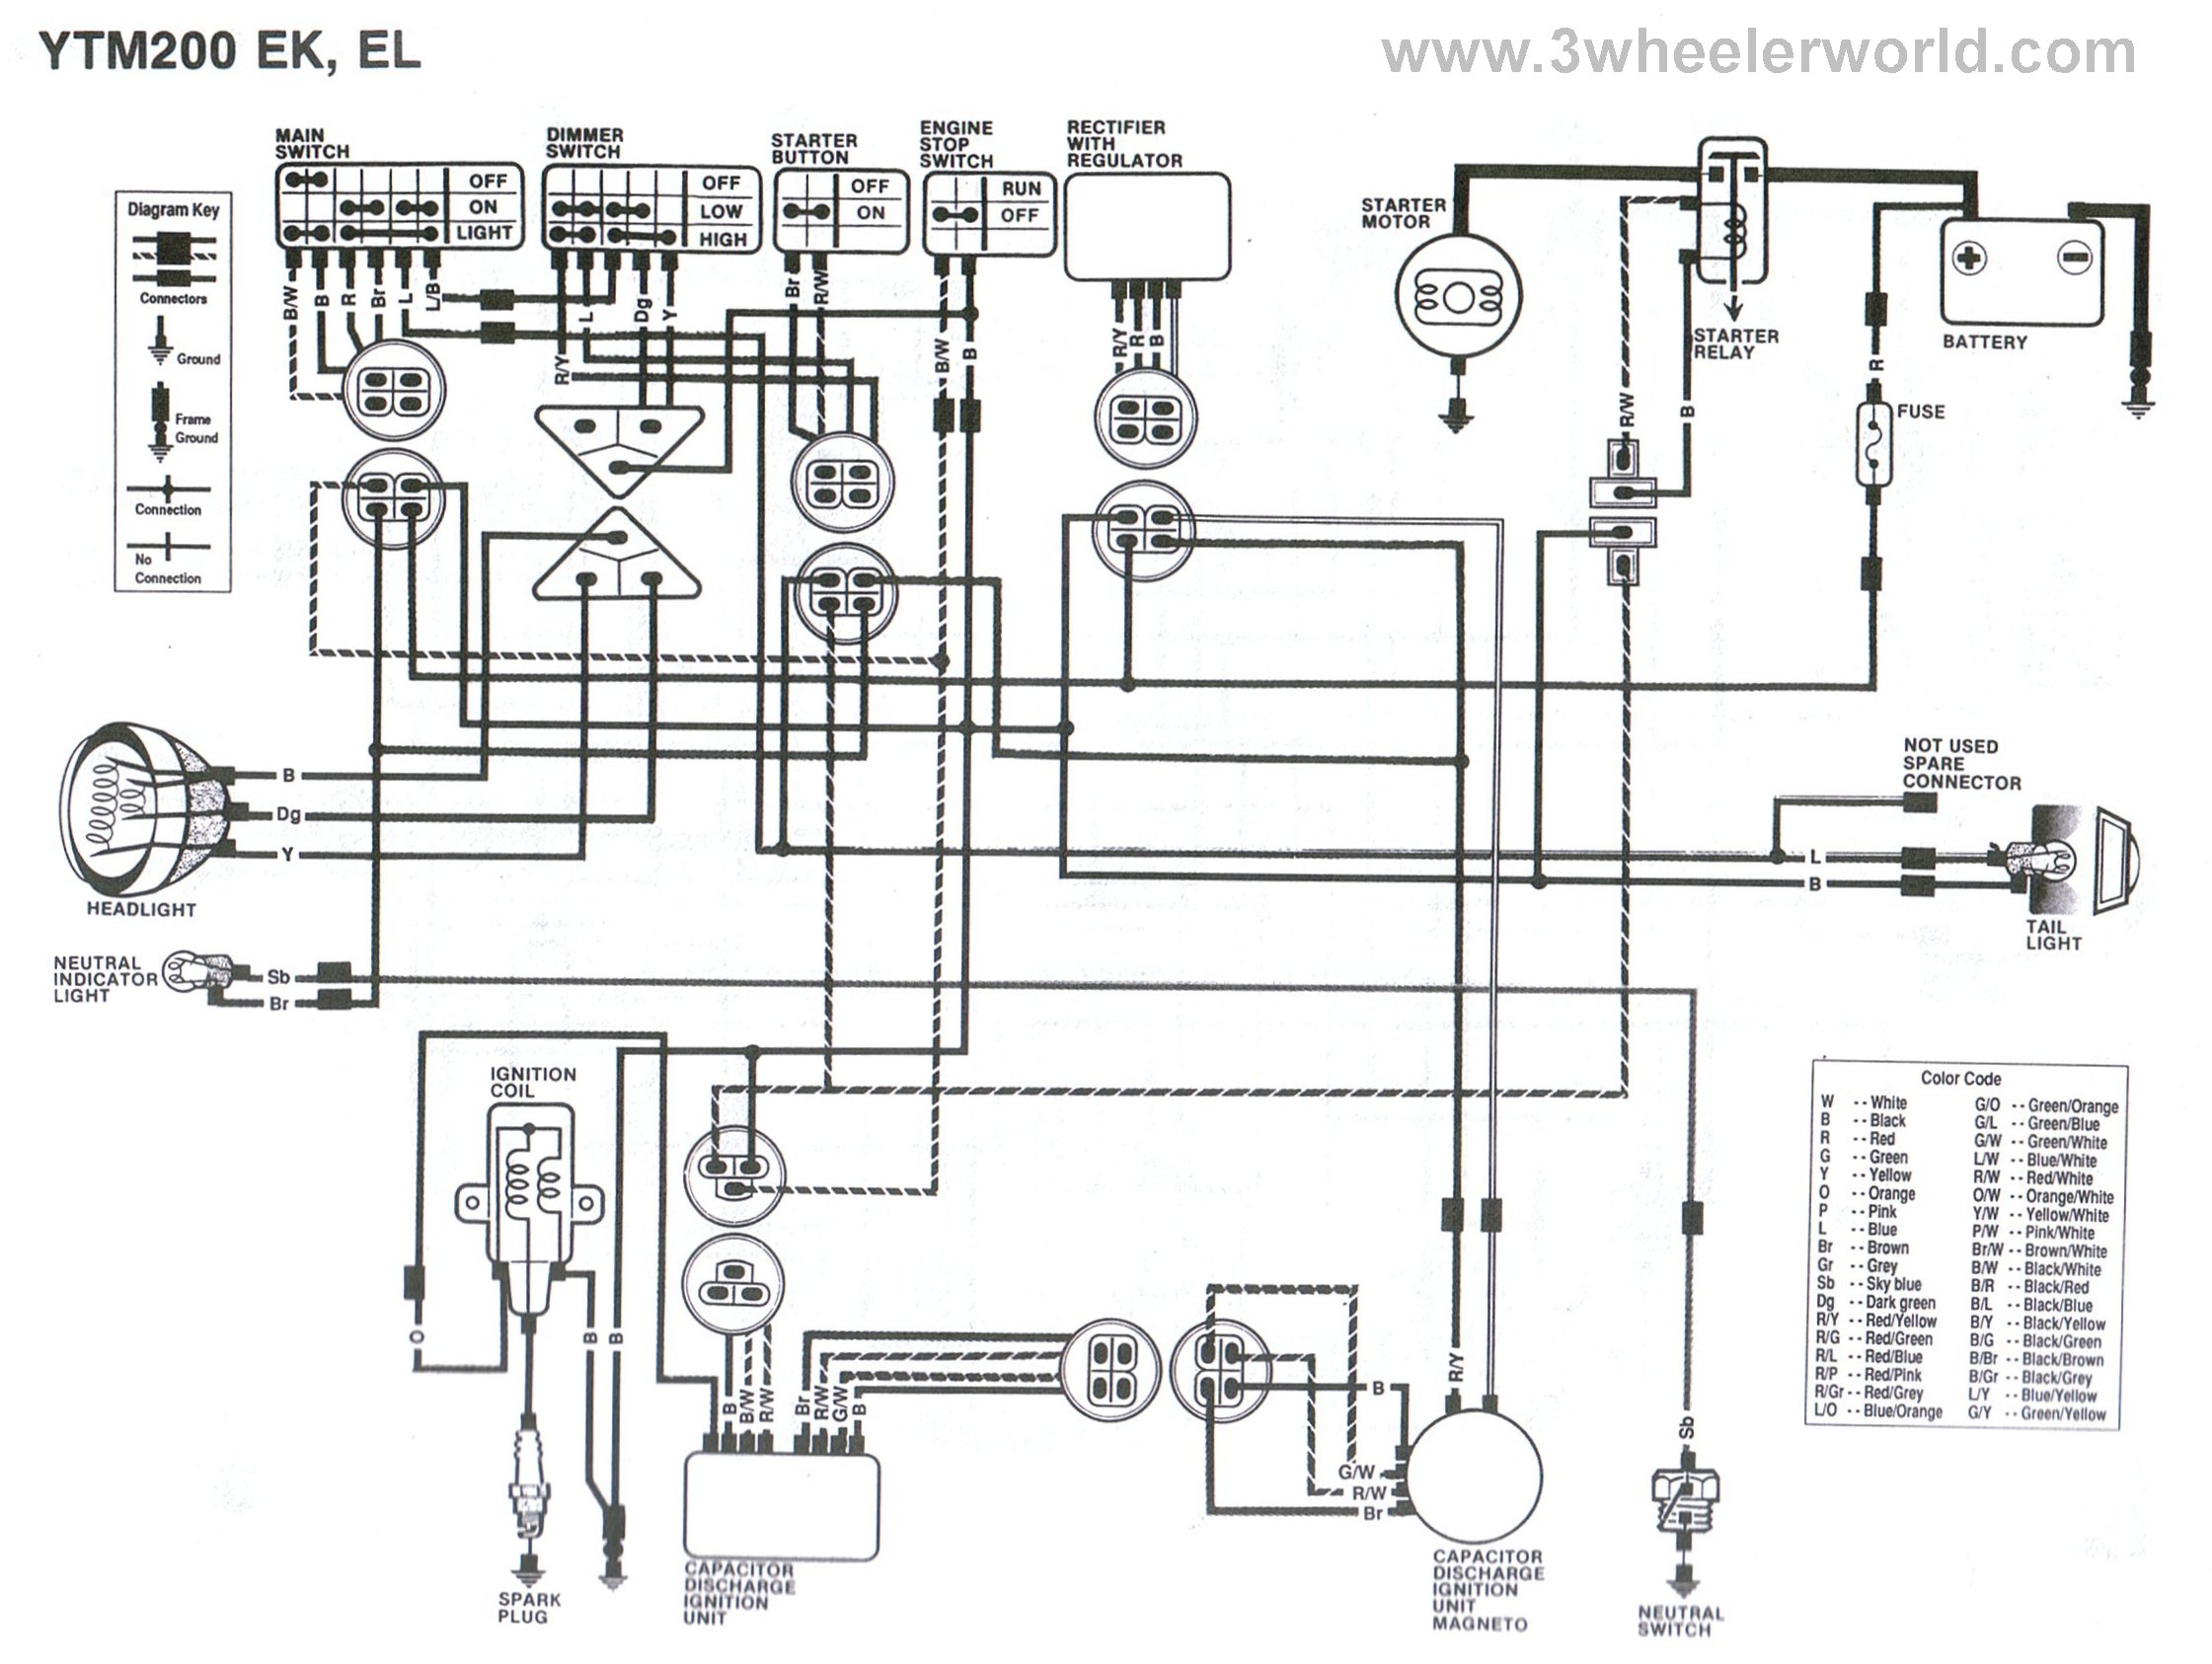 yamaha 225dx engine diagram yamaha wiring diagrams